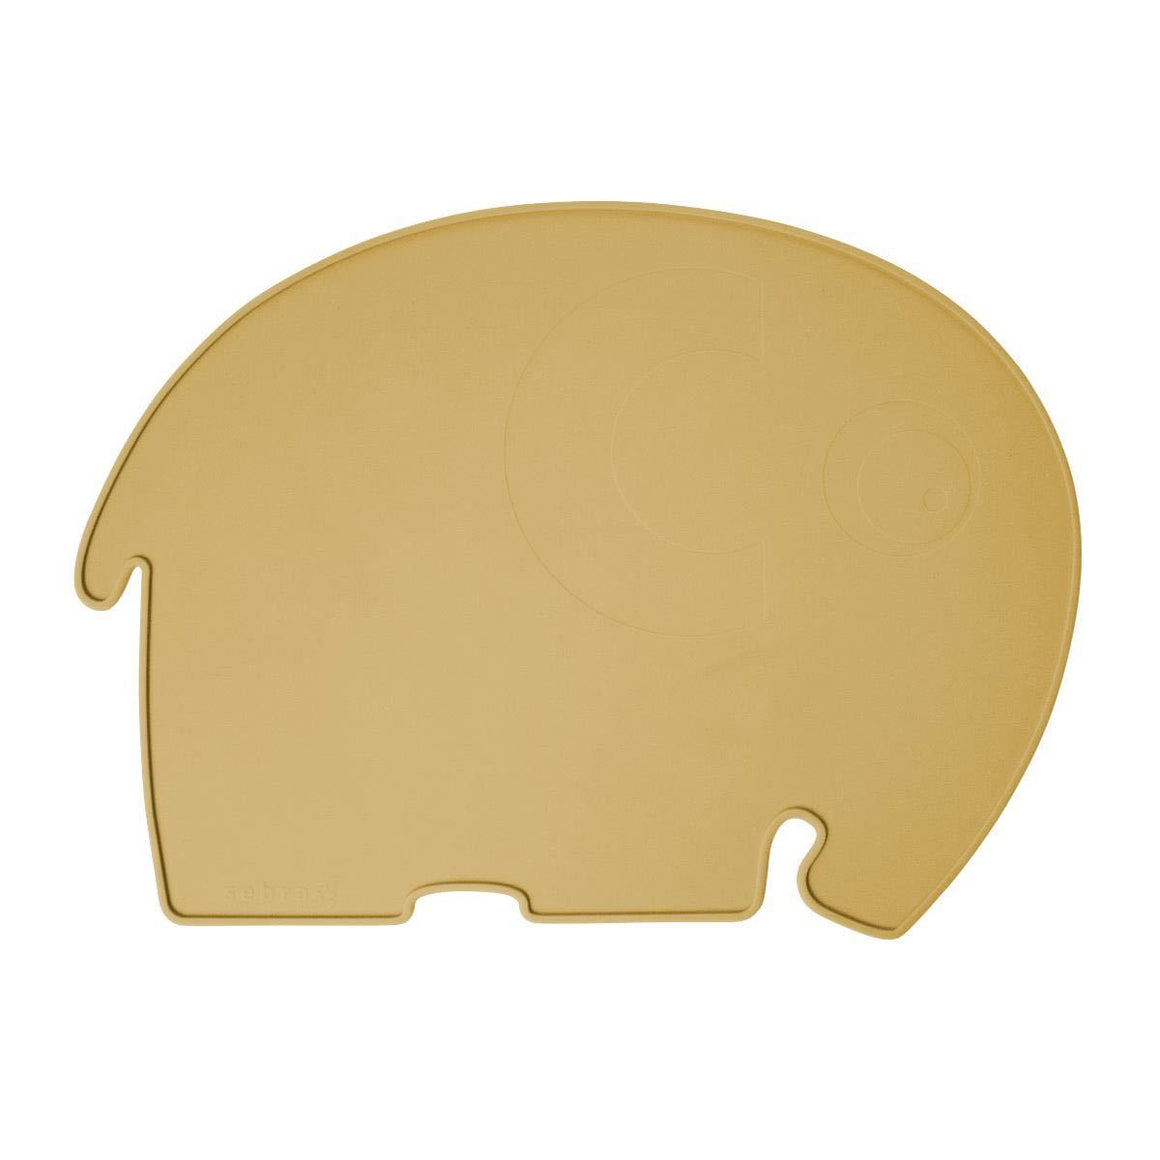 Sebra - Silicone placemat - Fanto the elephant - Yellow